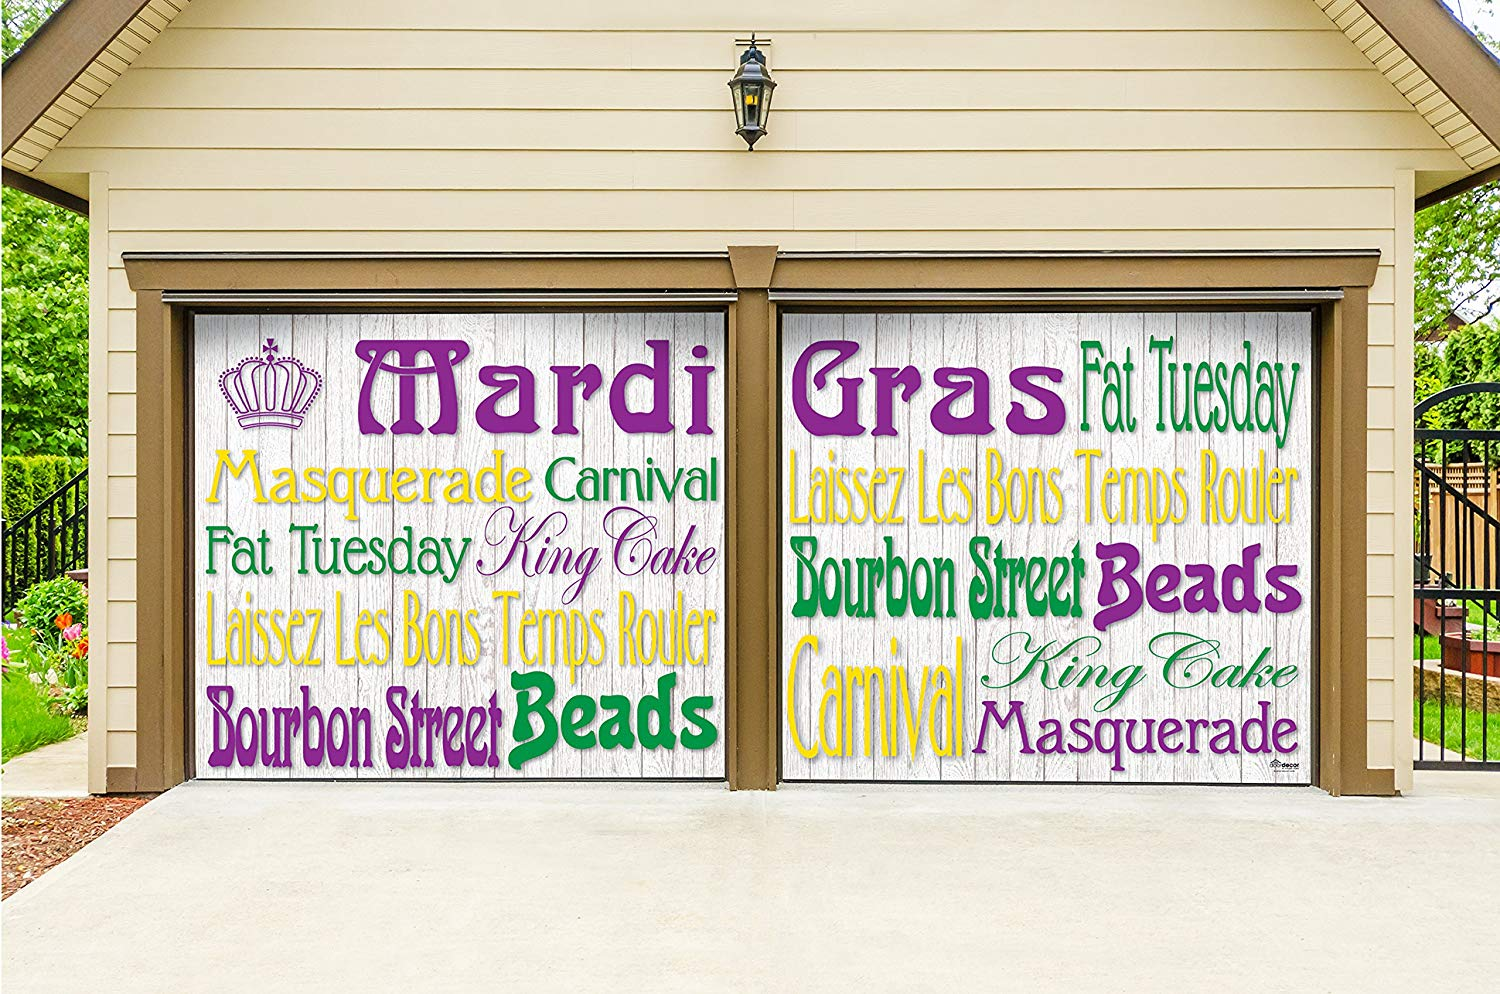 Victory Corps Outdoor Mardi Gras Decorations 2 Car Split Garage Door Banner Cover Mural - Mardi Gras Words, Two 7'x 8' Graphic Kits - The Original Mardi Gras Supplies Garage Door Banner Decor